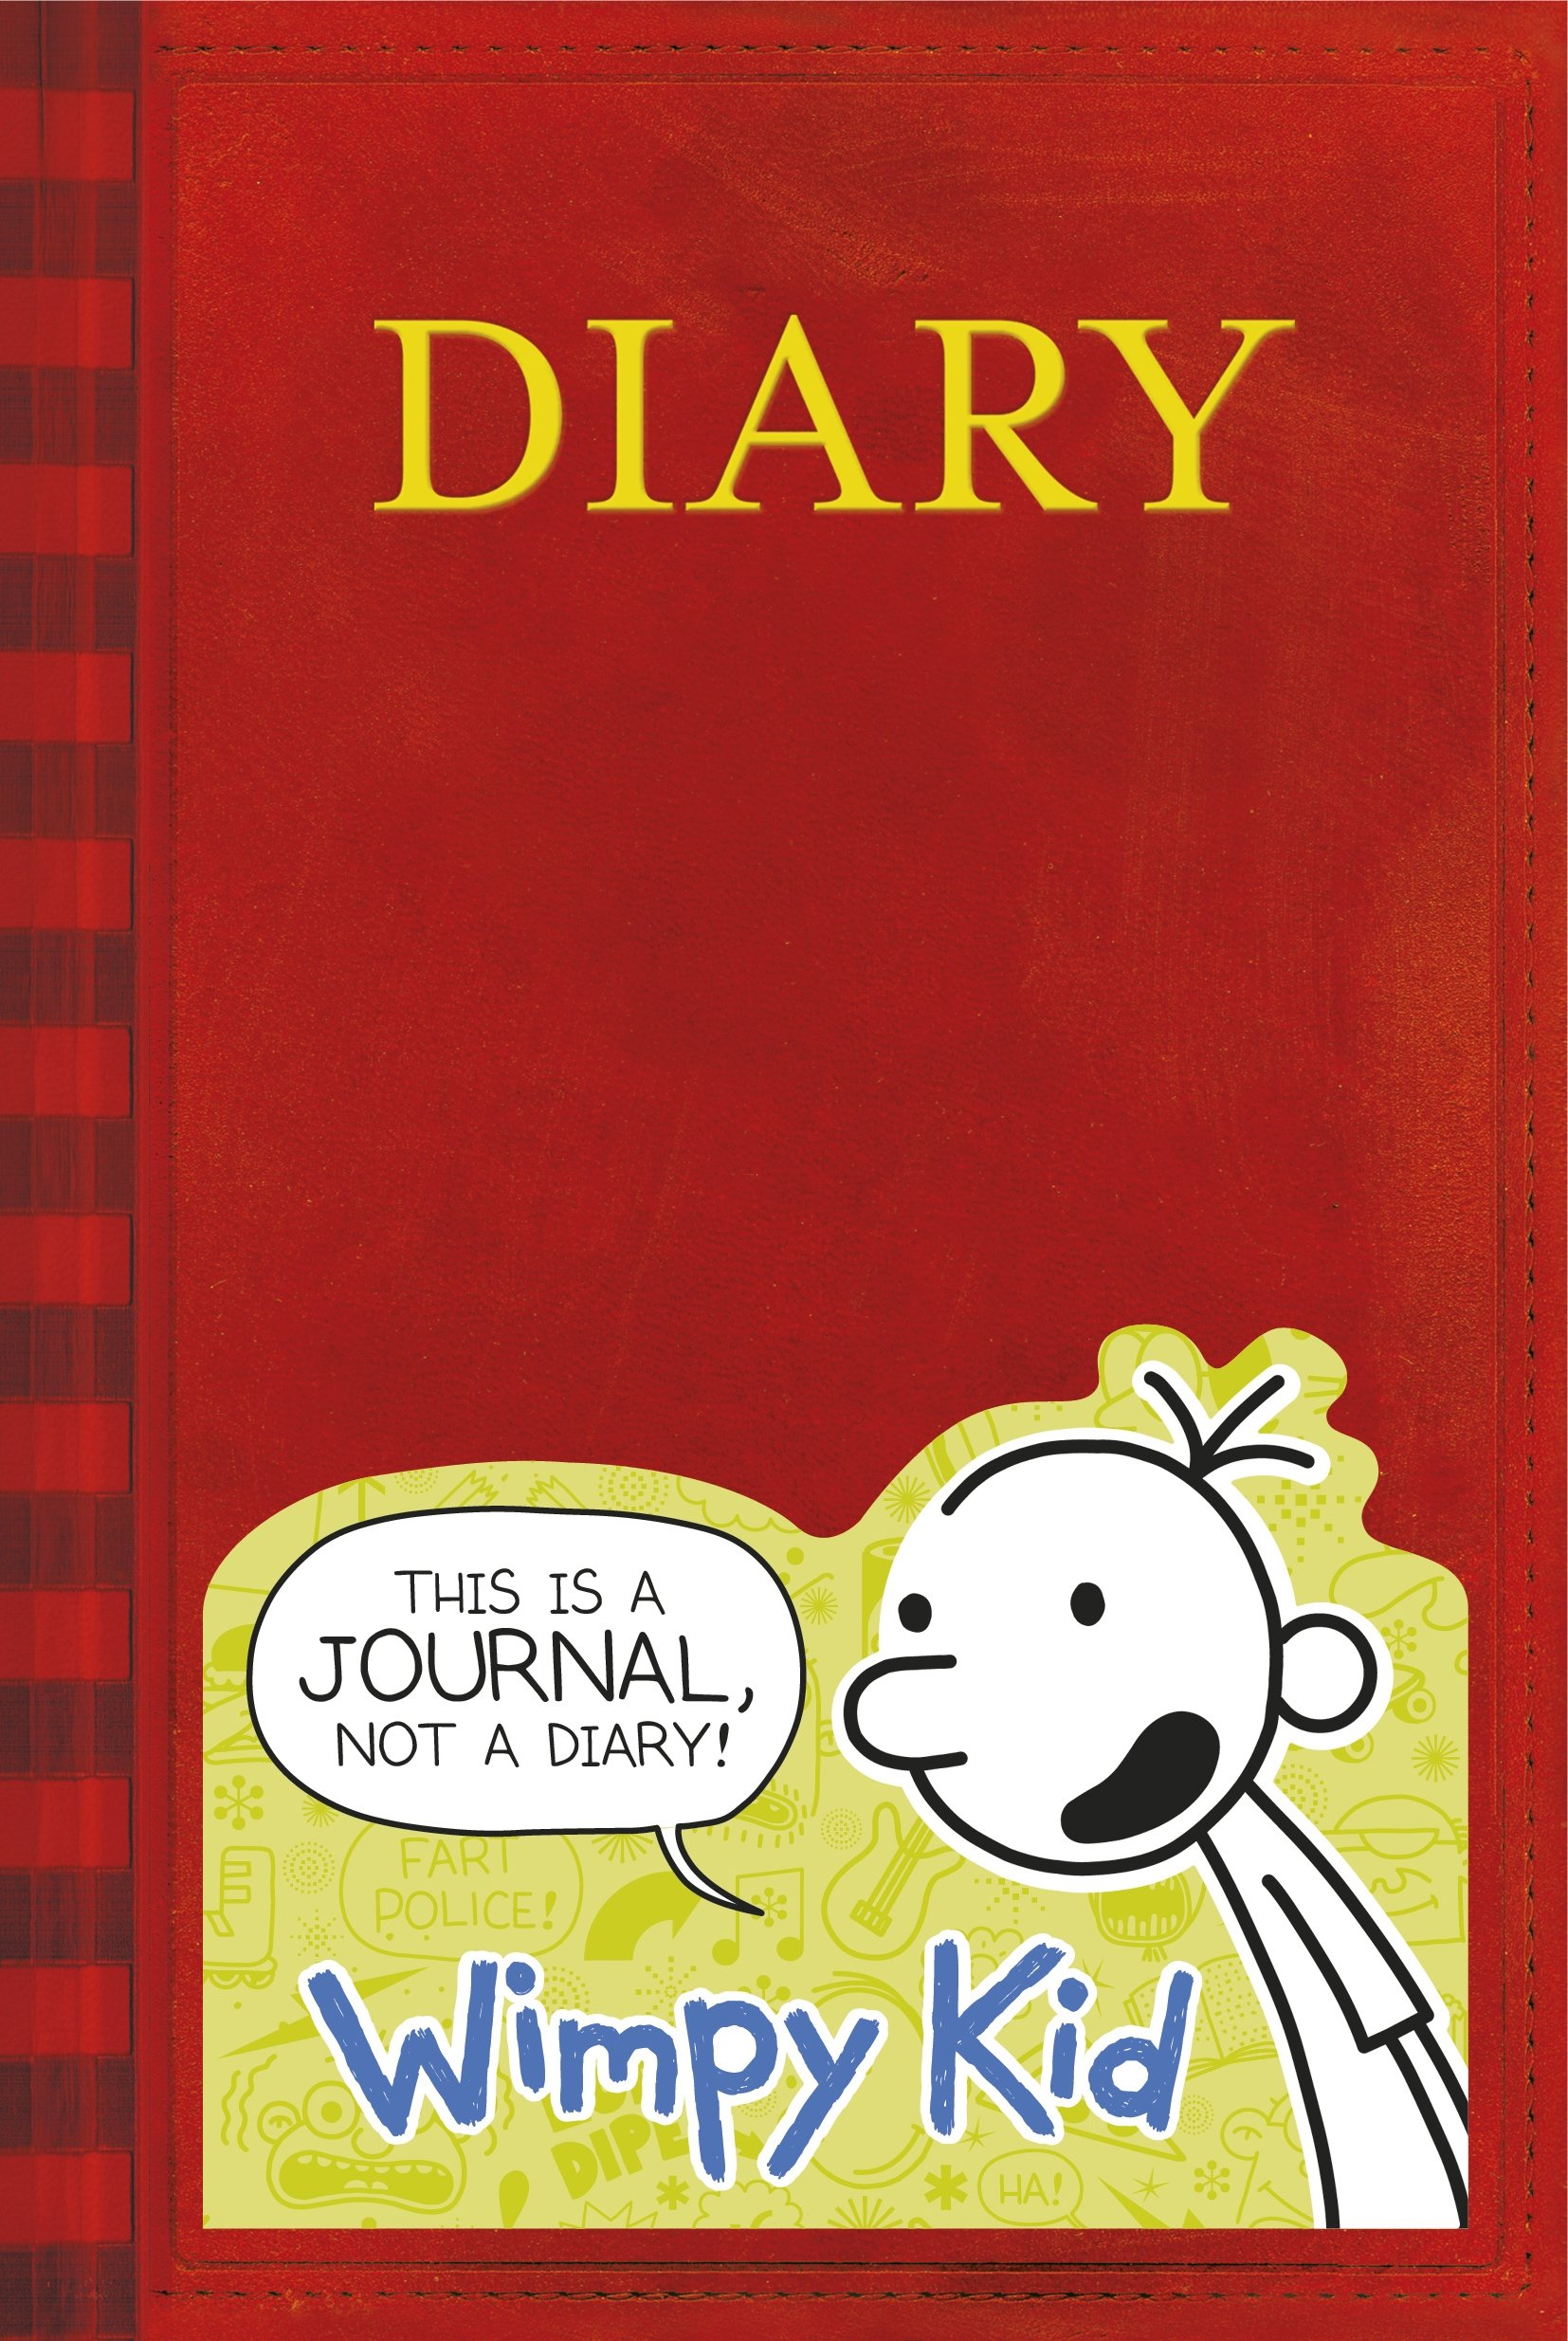 Diary of a wimpy kid book journal amazon jeff kinney diary of a wimpy kid book journal amazon jeff kinney 5060312812734 books solutioingenieria Images